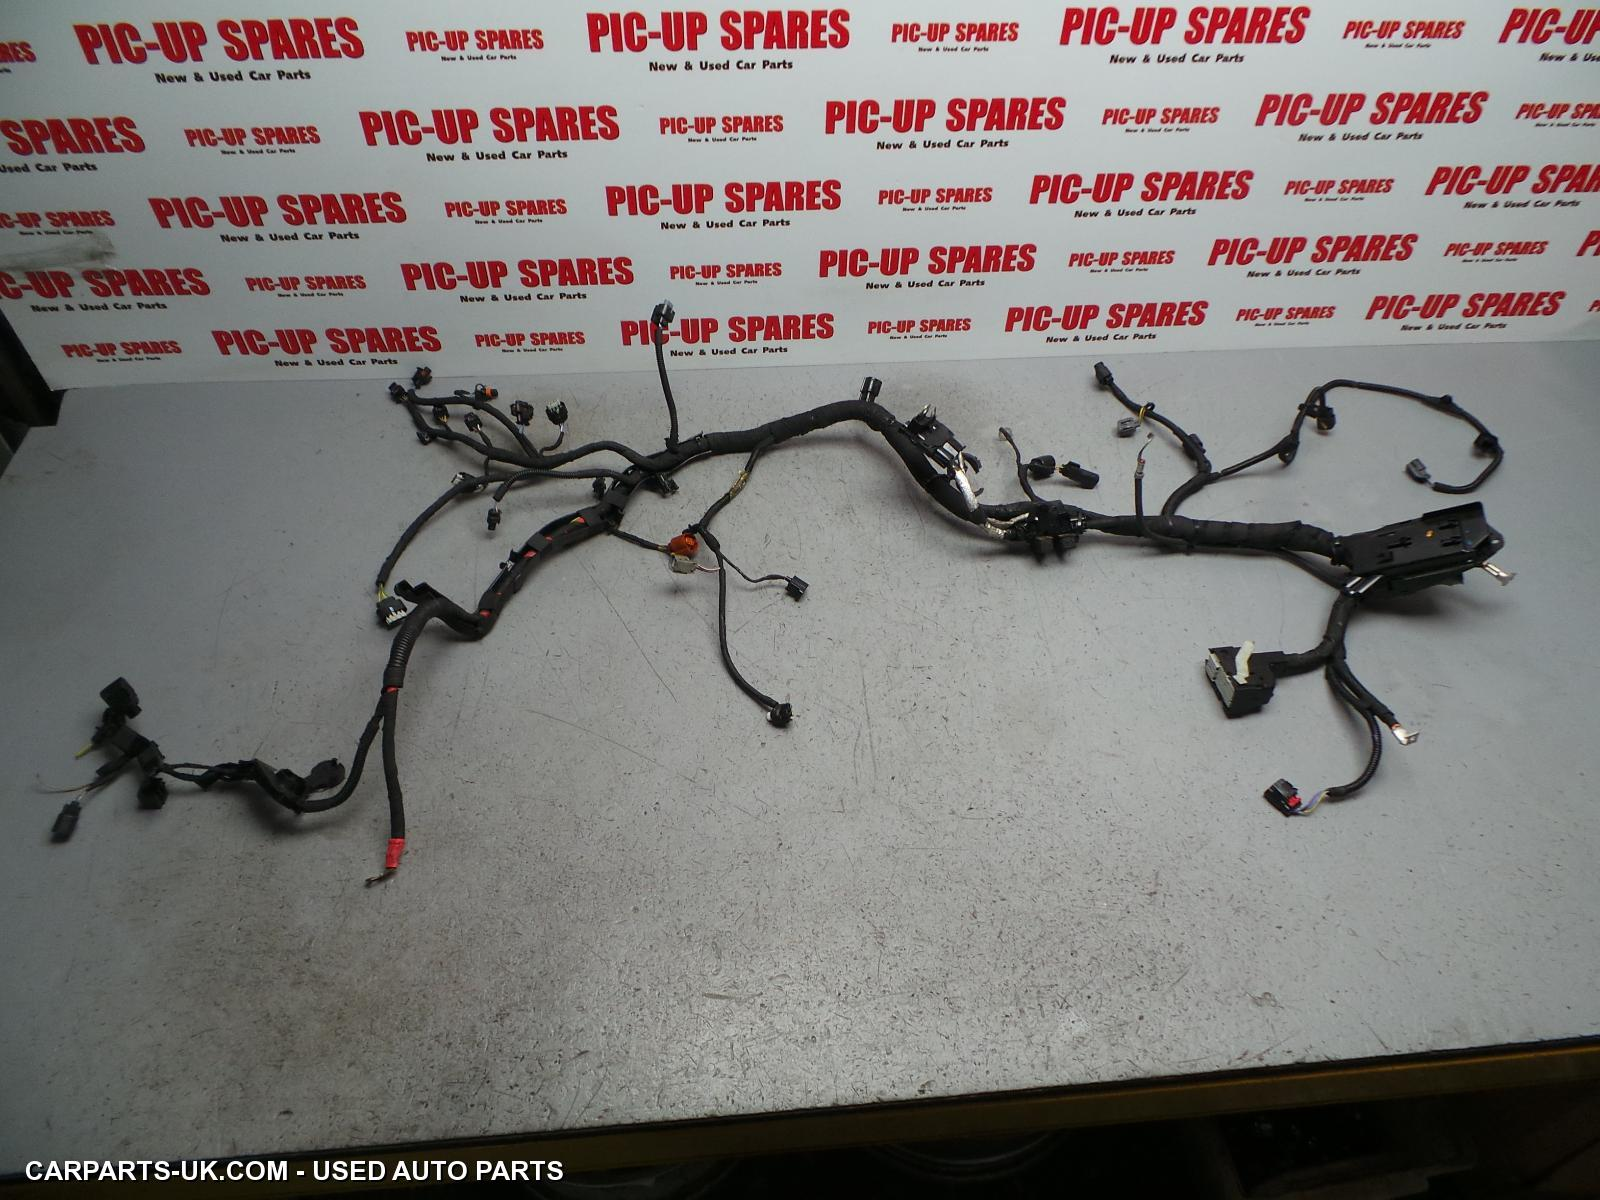 Wiring Harness 2015 Ford Fiesta Parts Mk8 10 Petrol Engine And Gearbox With Air Conesptraction Control Stop Start 13 15